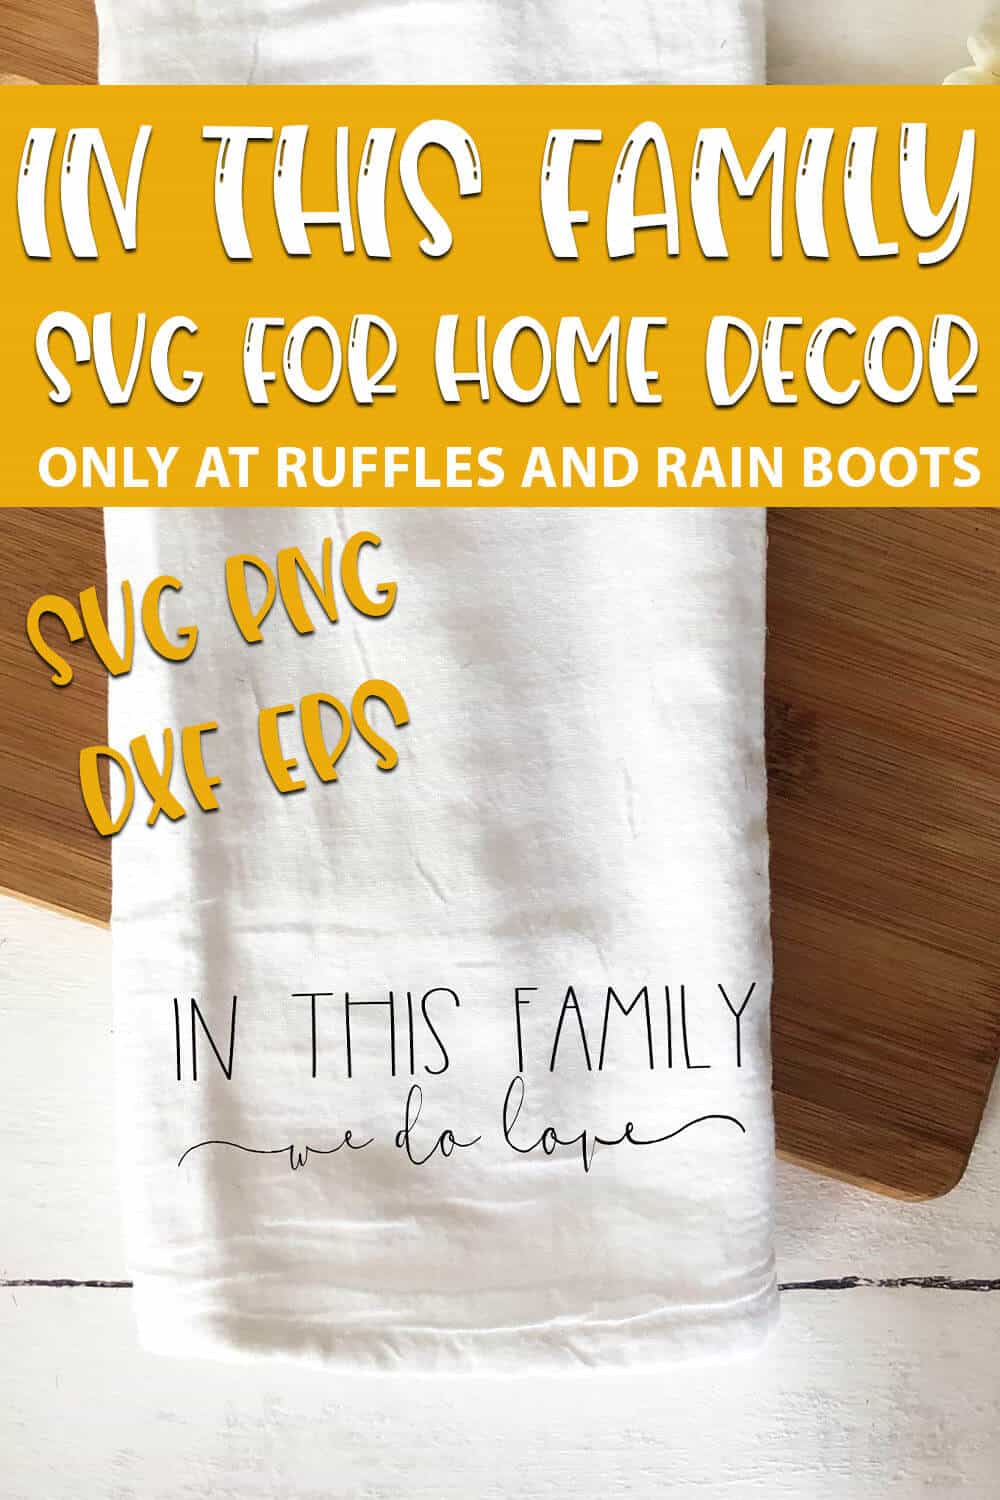 In This Family We Do Love SVG cut file set for cricut or silhouette with text which reads in this family SVG for home decor svg png dxf eps